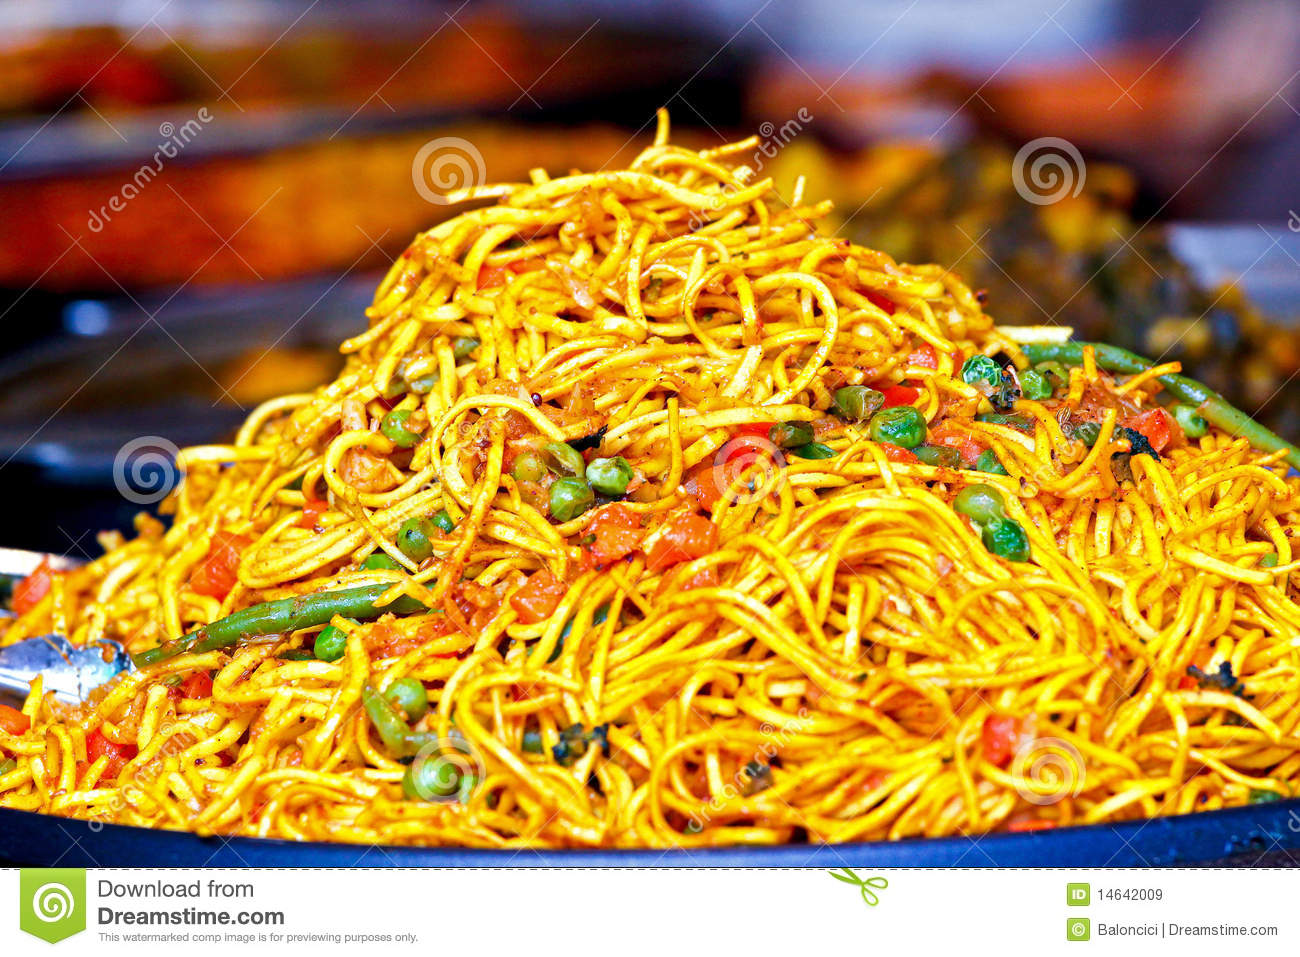 Spicy Noodles Royalty Free Stock Images - Image: 14642009